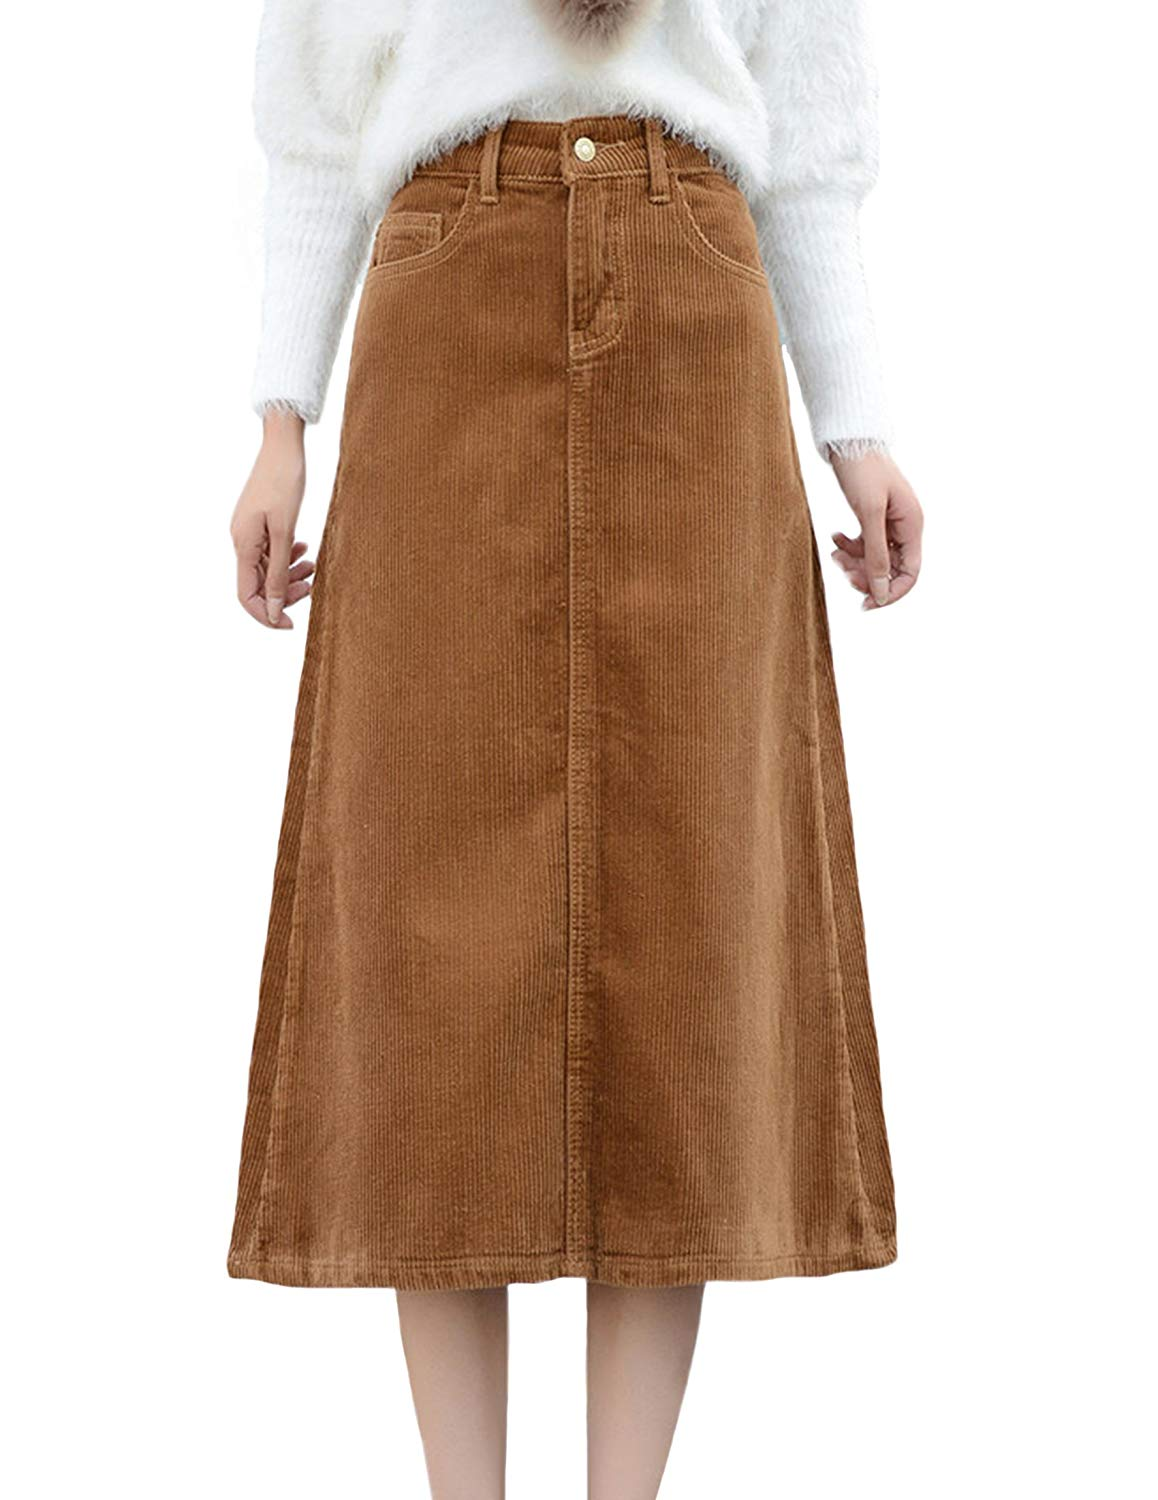 ZANLICE Women's A-Line Cotton Corduroy Midi Skirts with Pockets S-2X at Amazon Women's Clothing store: